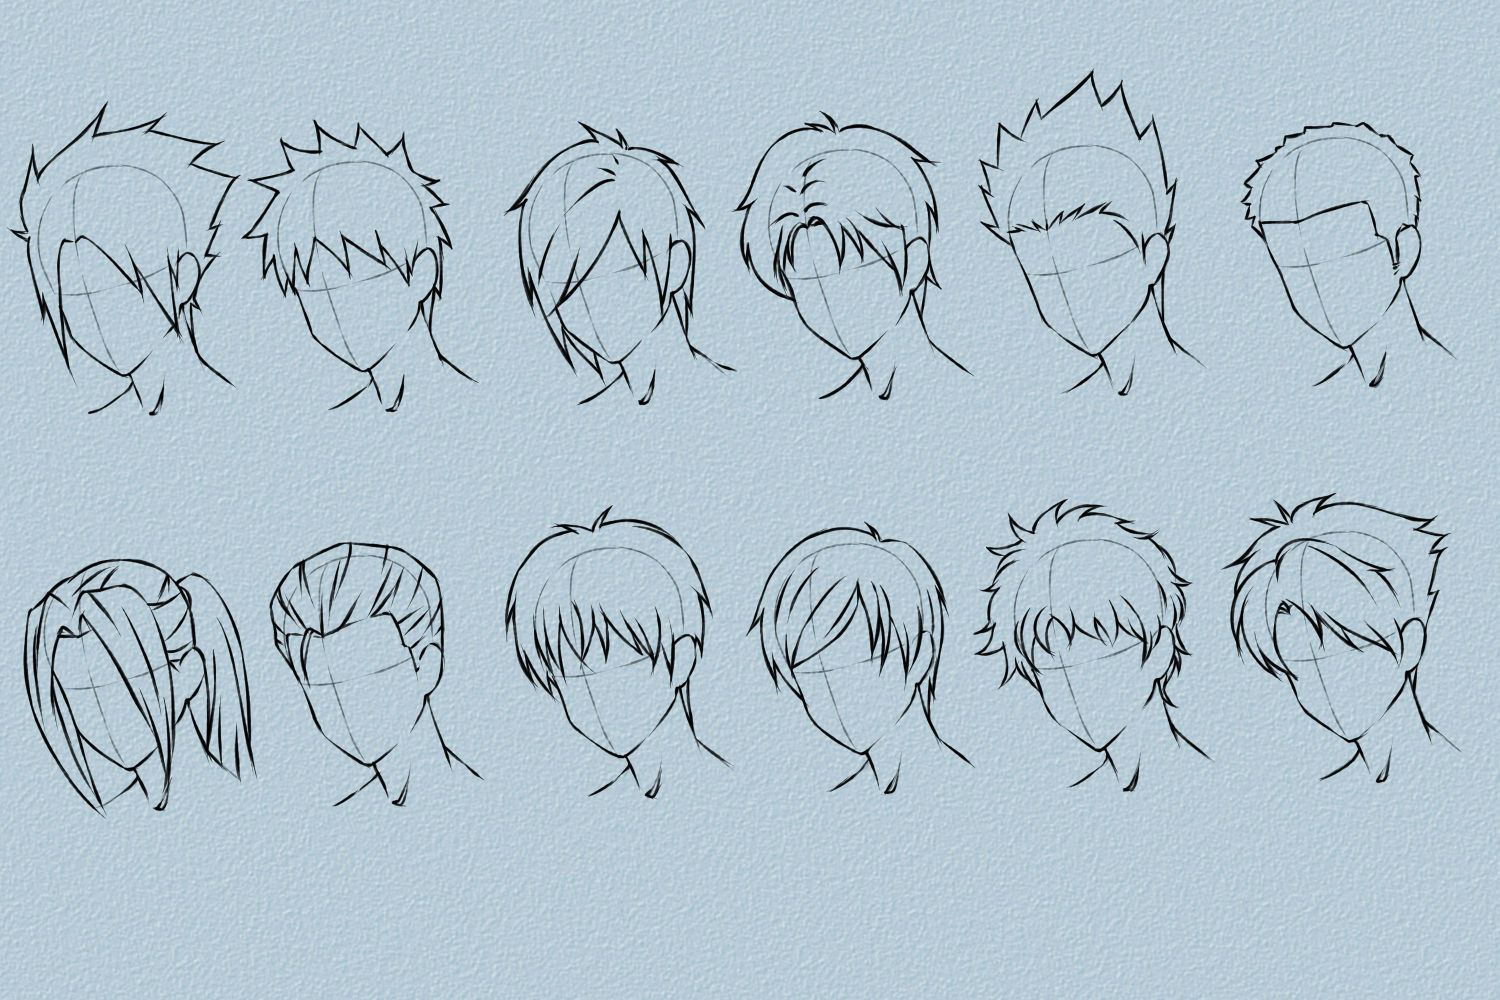 Best ideas about Anime Hairstyle Male . Save or Pin Model hairstyles for Male Anime Hairstyles How to Draw Now.